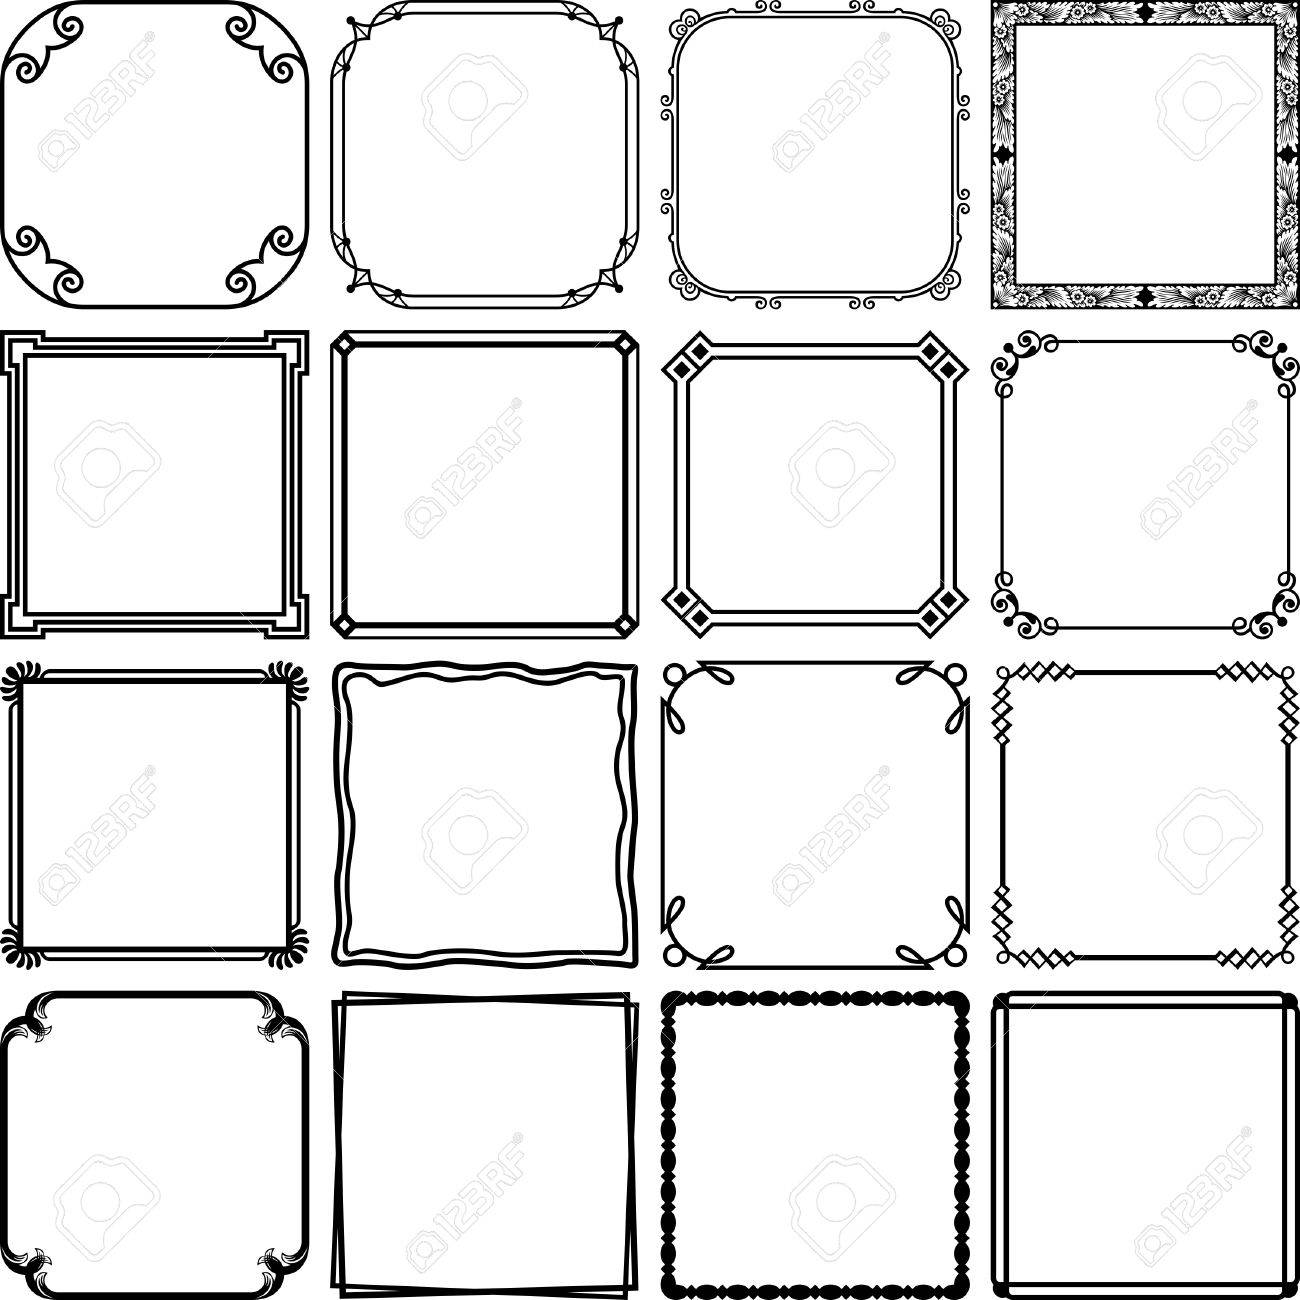 Simple Frames Royalty Free Cliparts, Vectors, And Stock Illustration ...